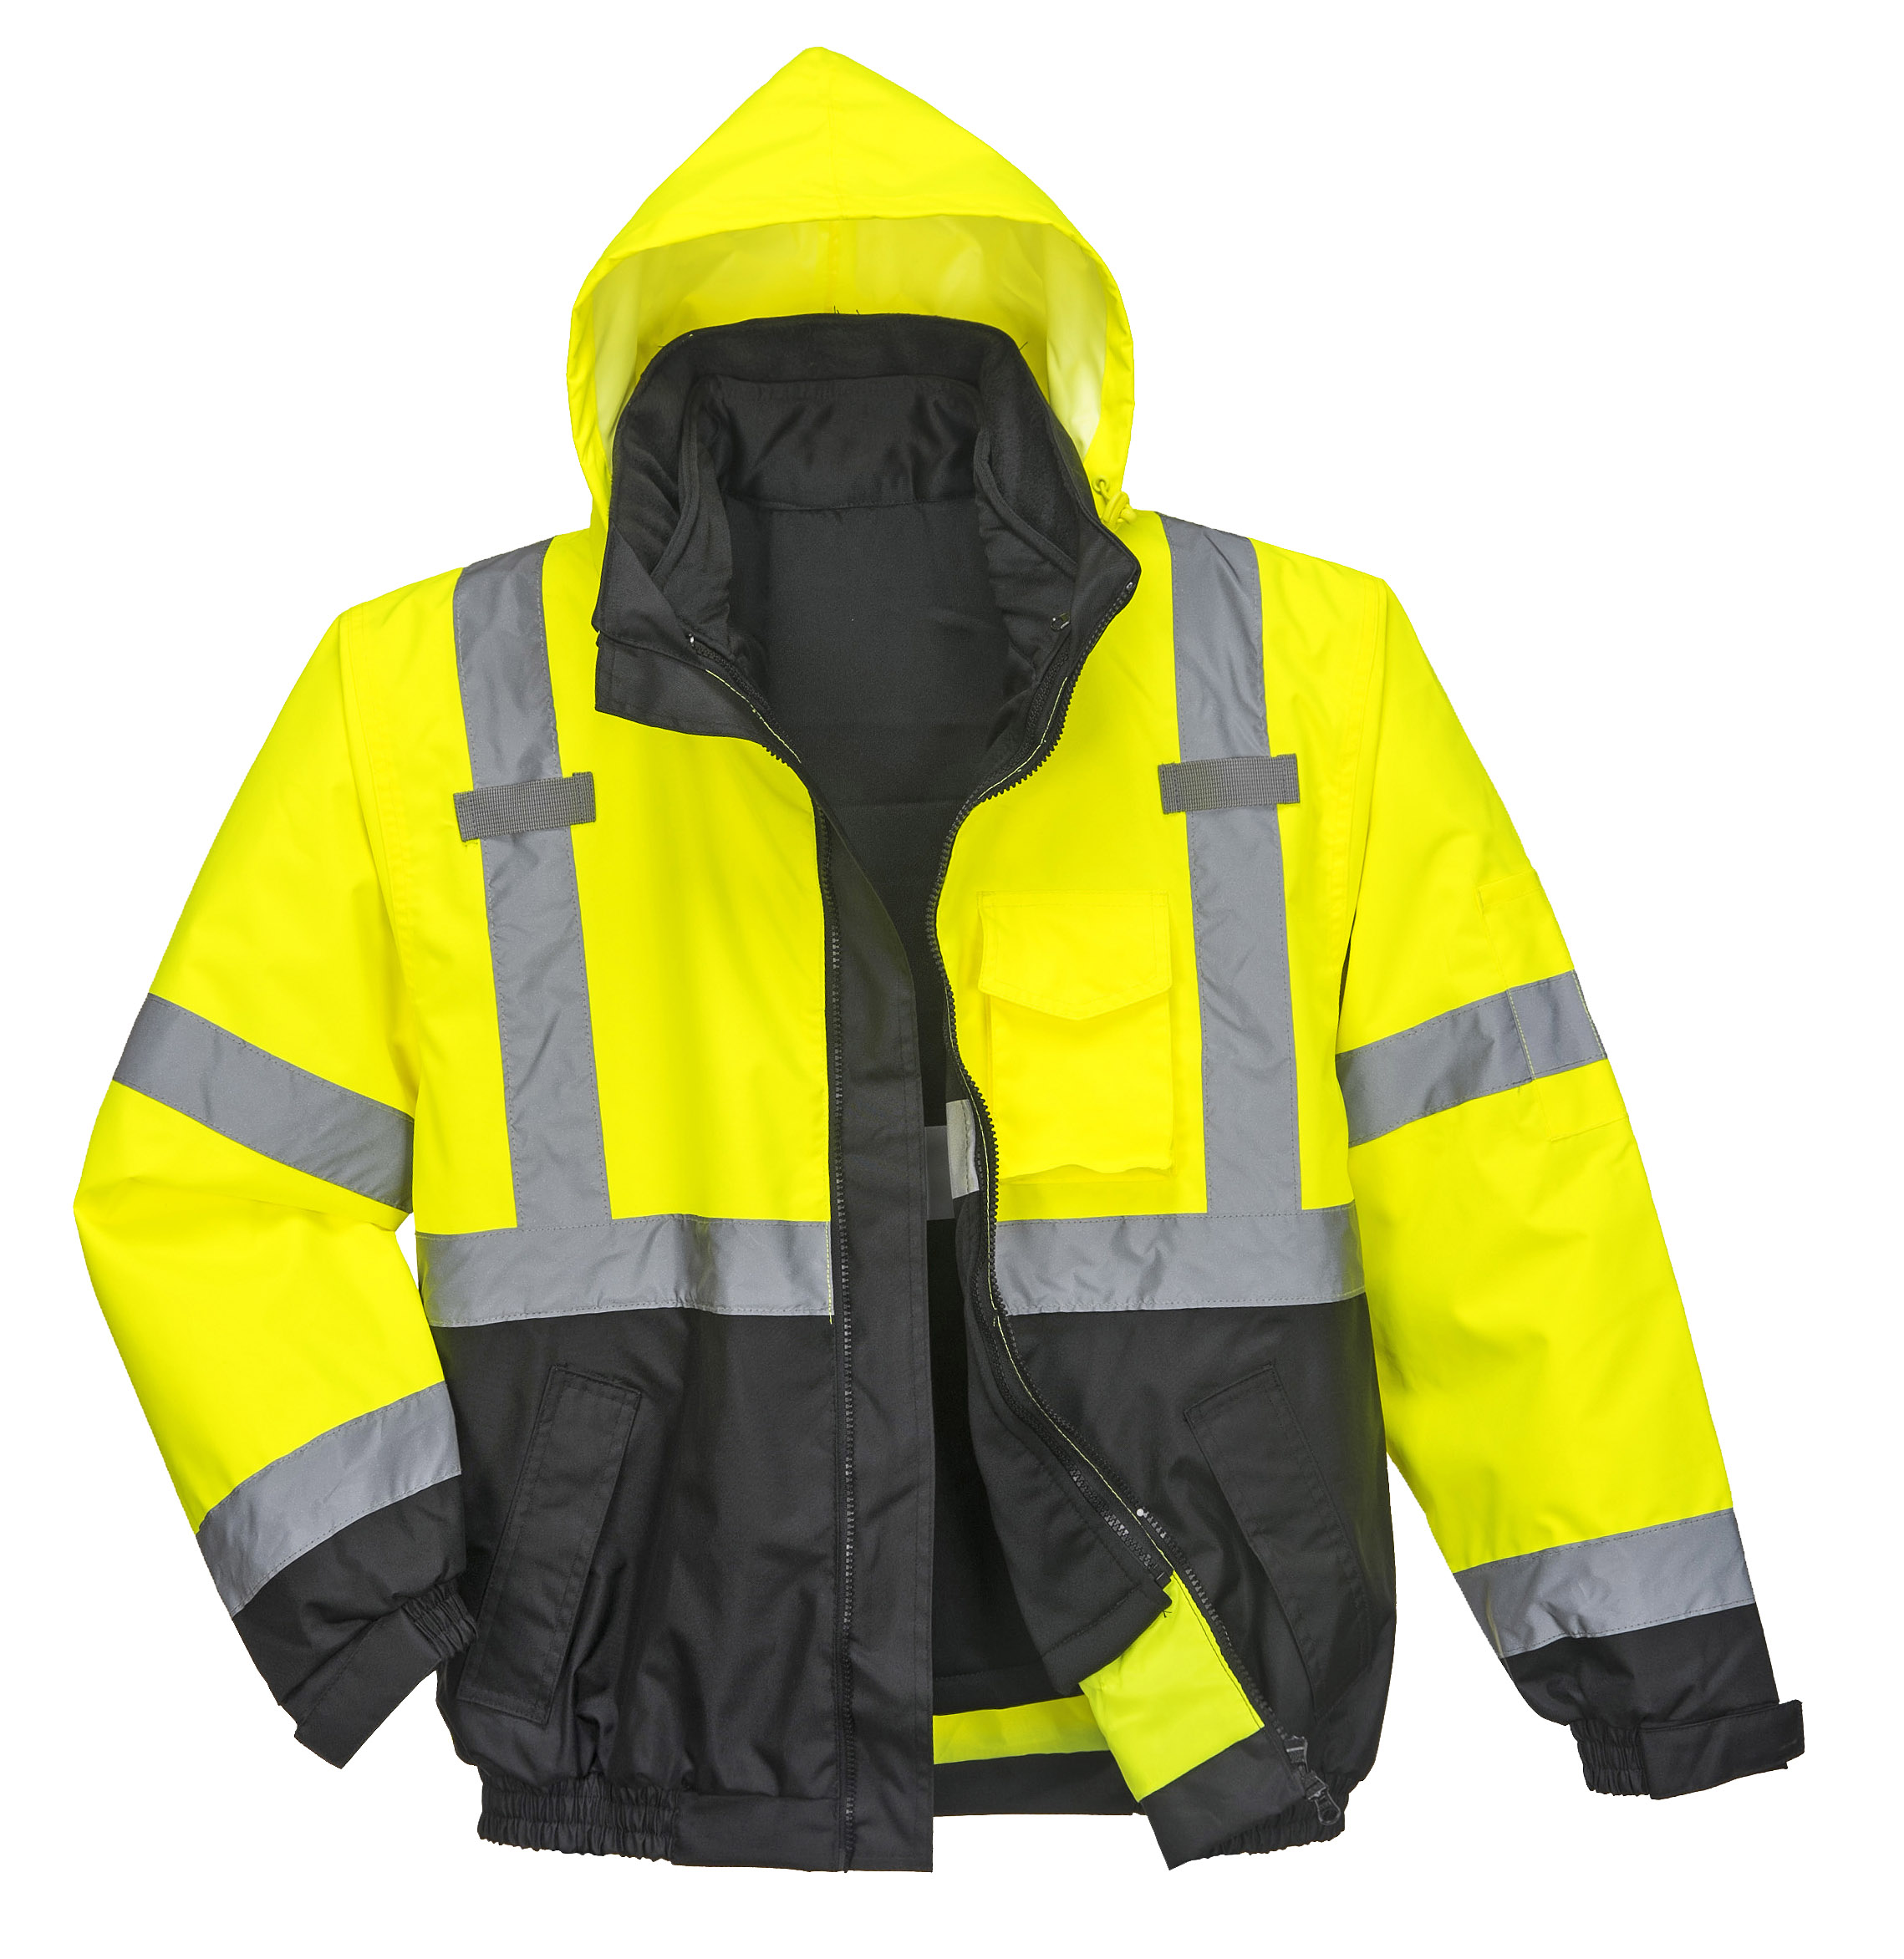 Portwest Men s 3-in-1 High Visibility Winter Jacket — iWantWorkwear 2d49e6870280